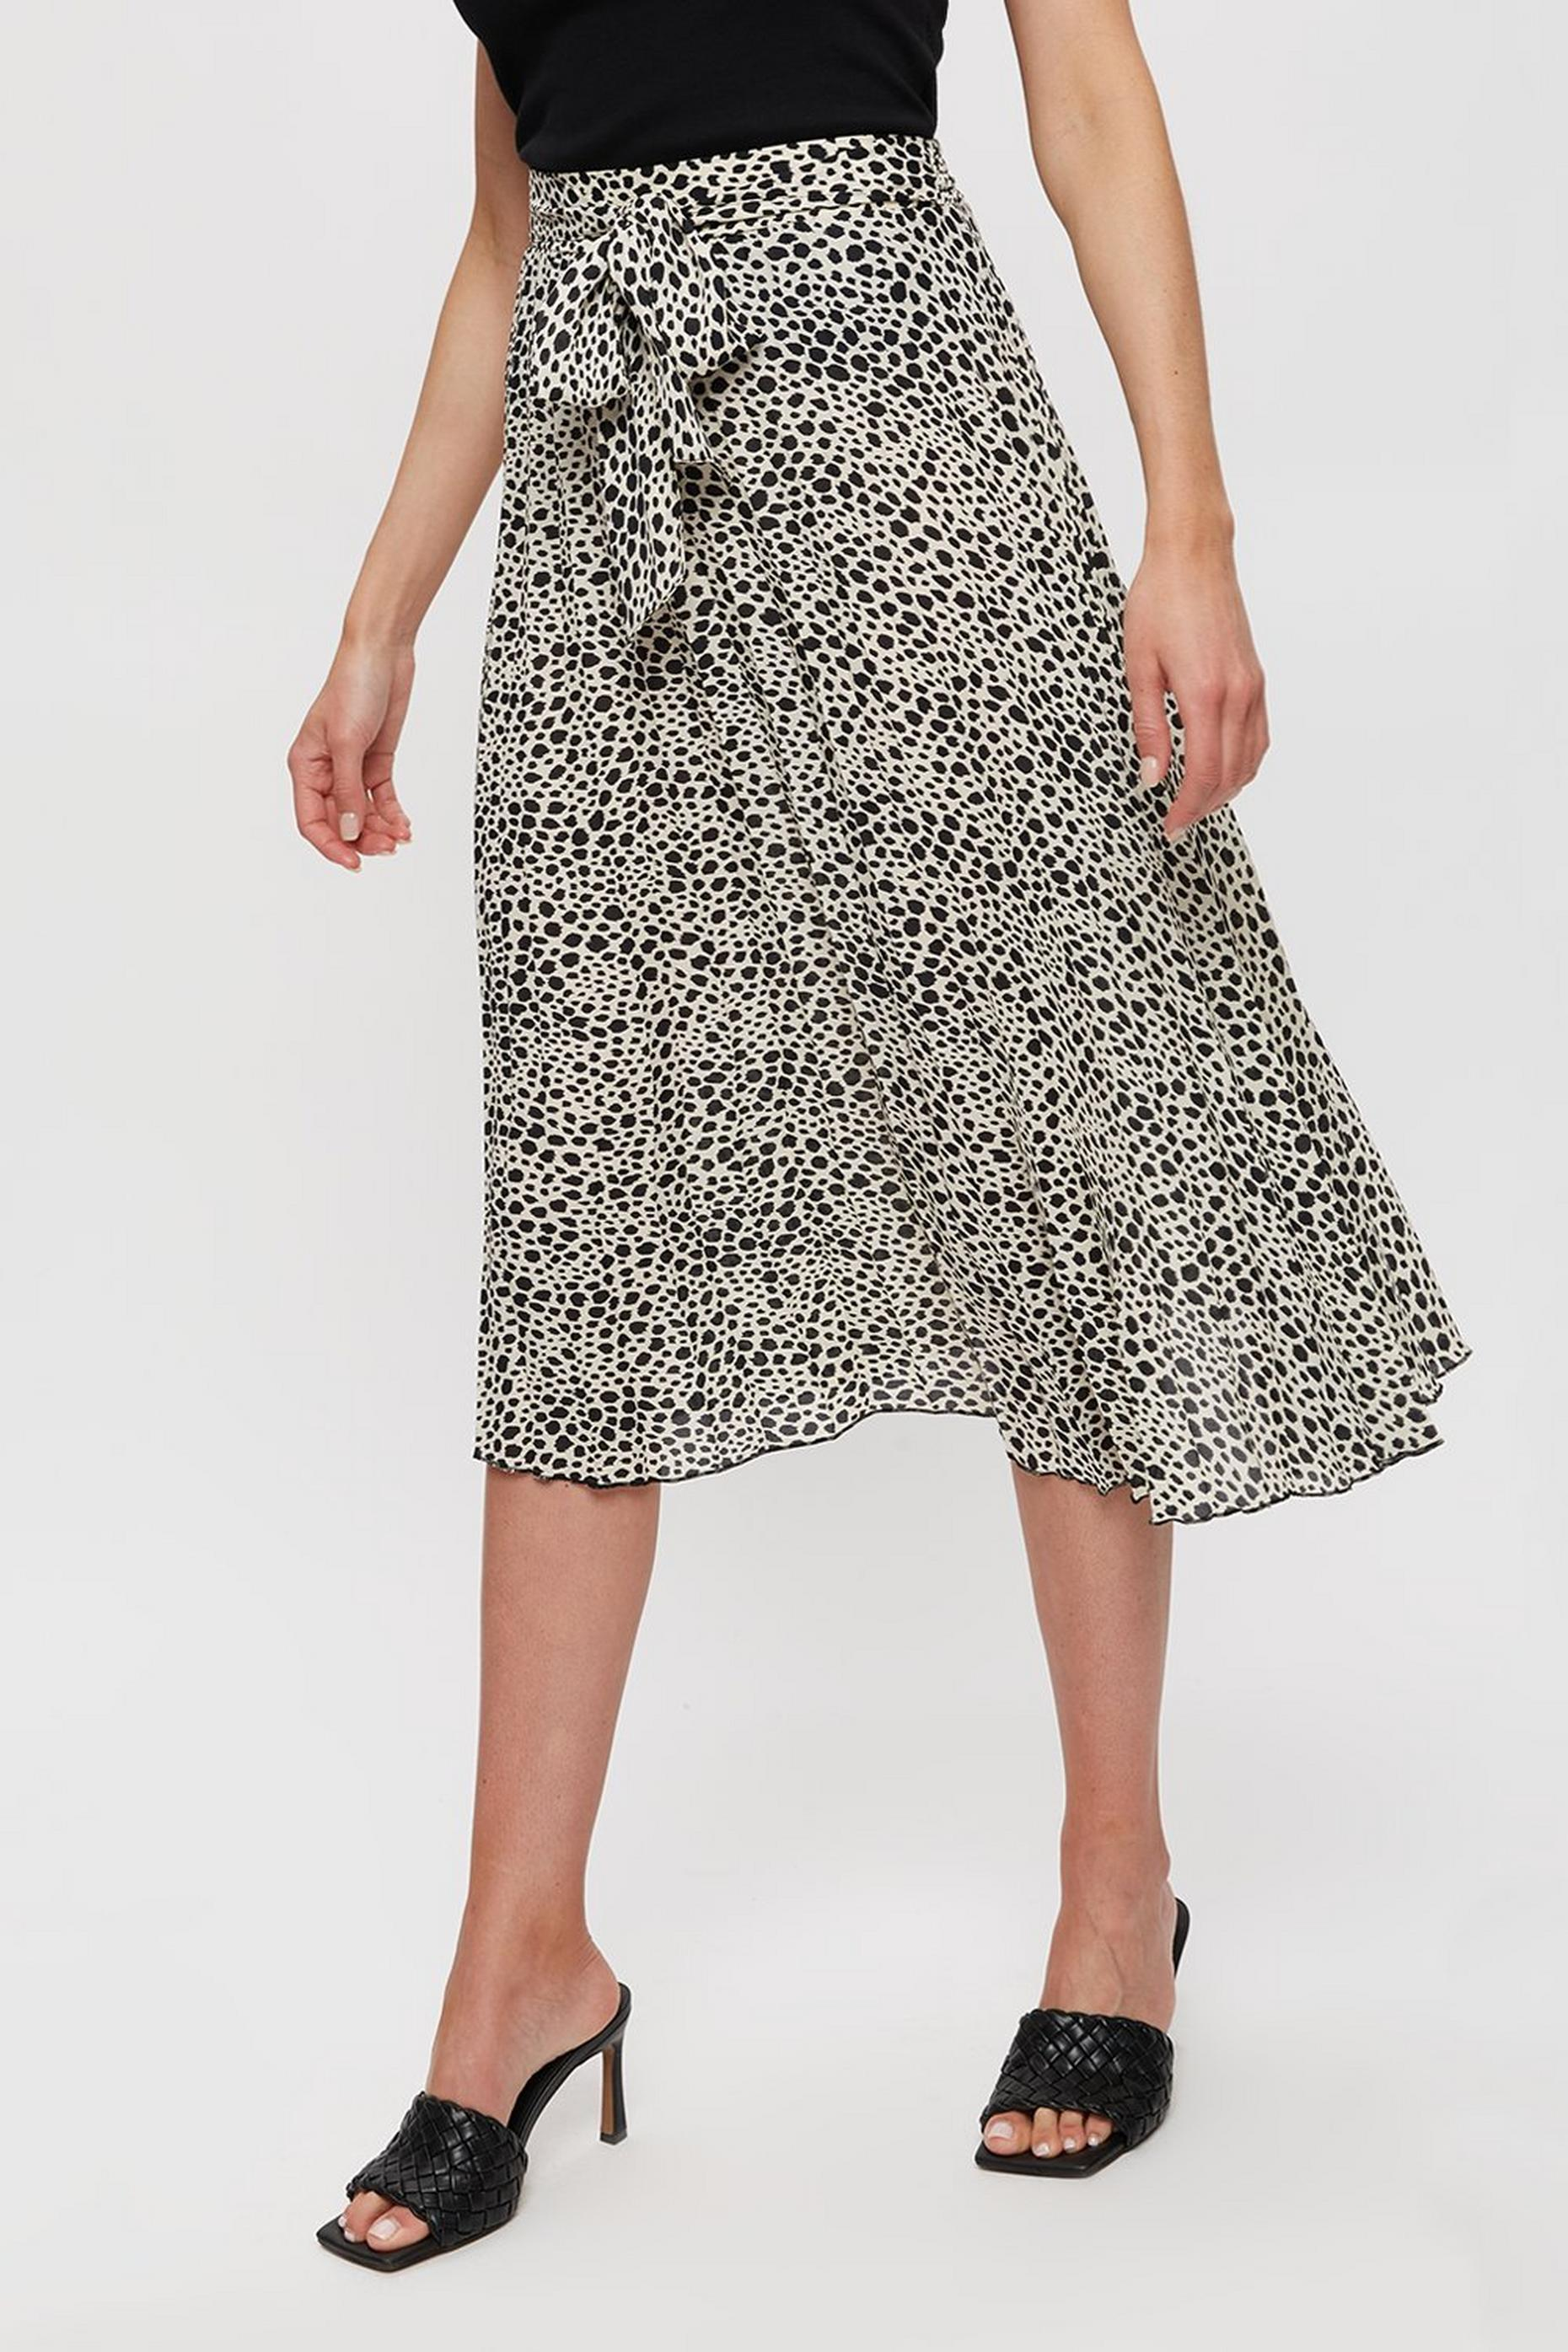 Multi Colour Leopard Print Ruched Midi Skirt